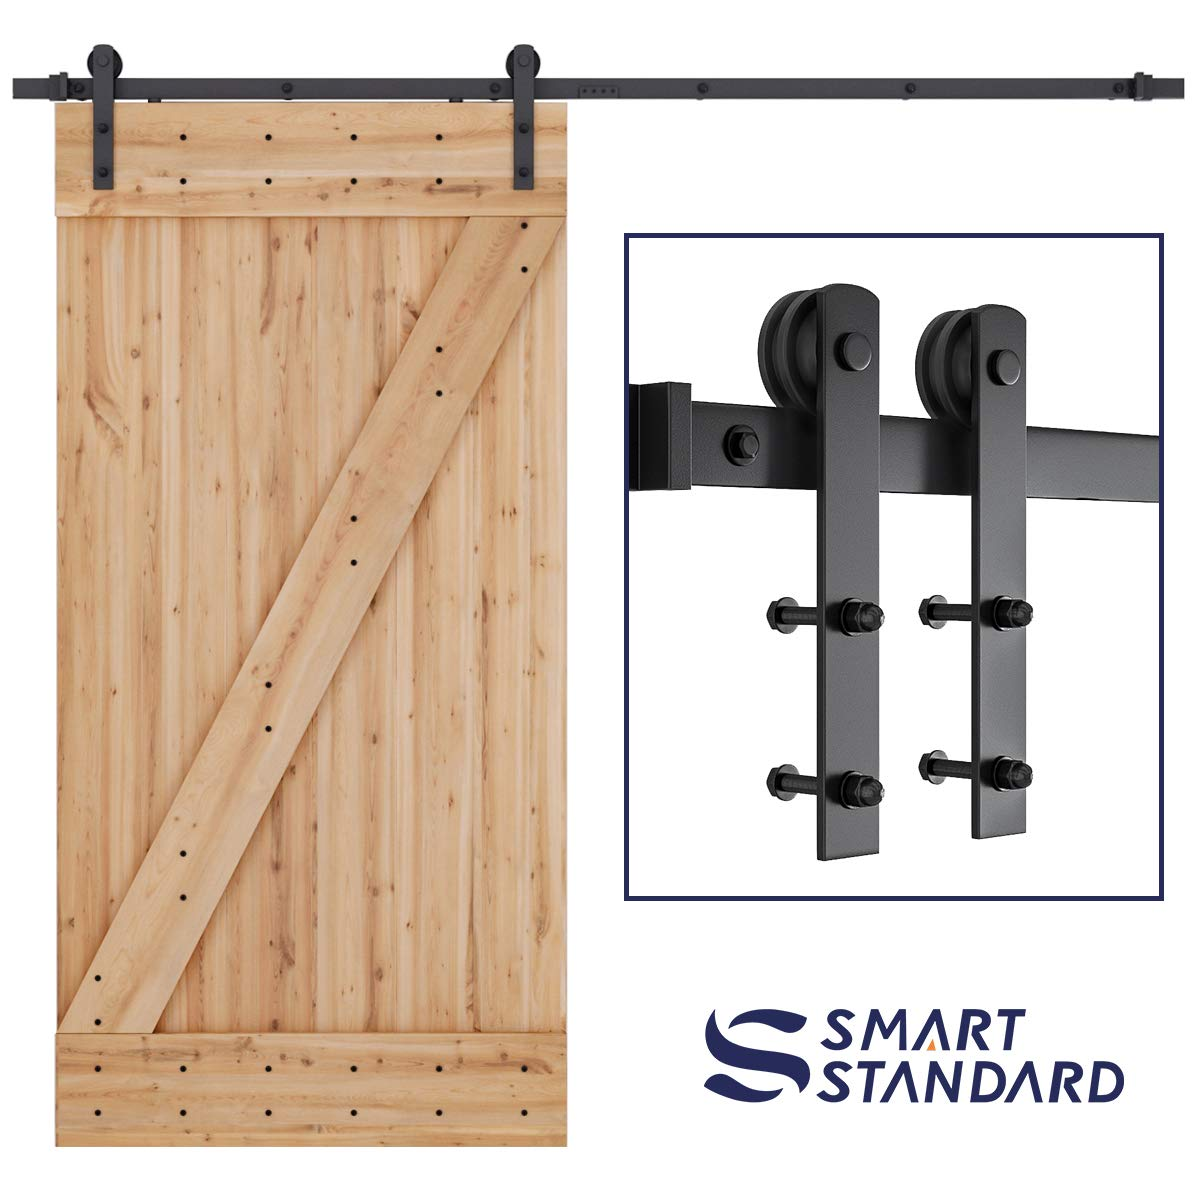 SMARTSTANDARD 8ft Heavy Duty Sturdy Sliding Barn Door Hardware Kit - Smoothly and Quietly-Simple and Easy to Install-Includes Step By Step Installation Instruction-Fit 42''-48''Wide Door Panel (I shape) by SMARTSTANDARD